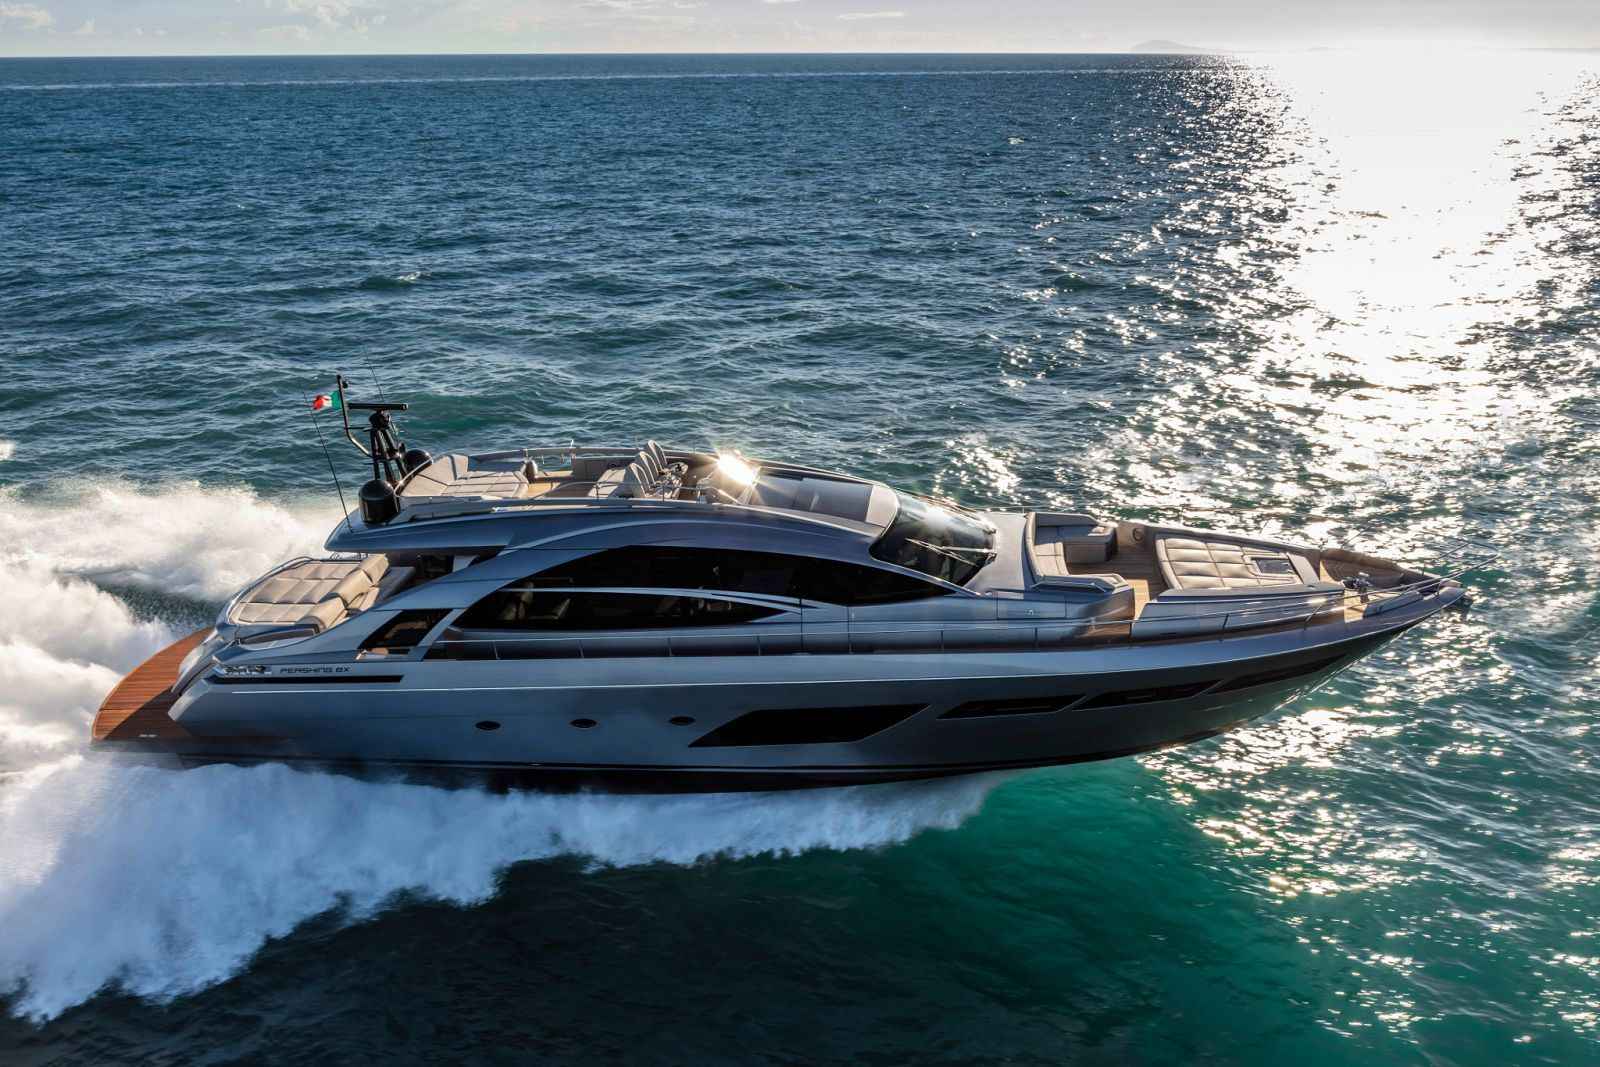 Pershing 8X Yacht for Sale - Profile Running Shot